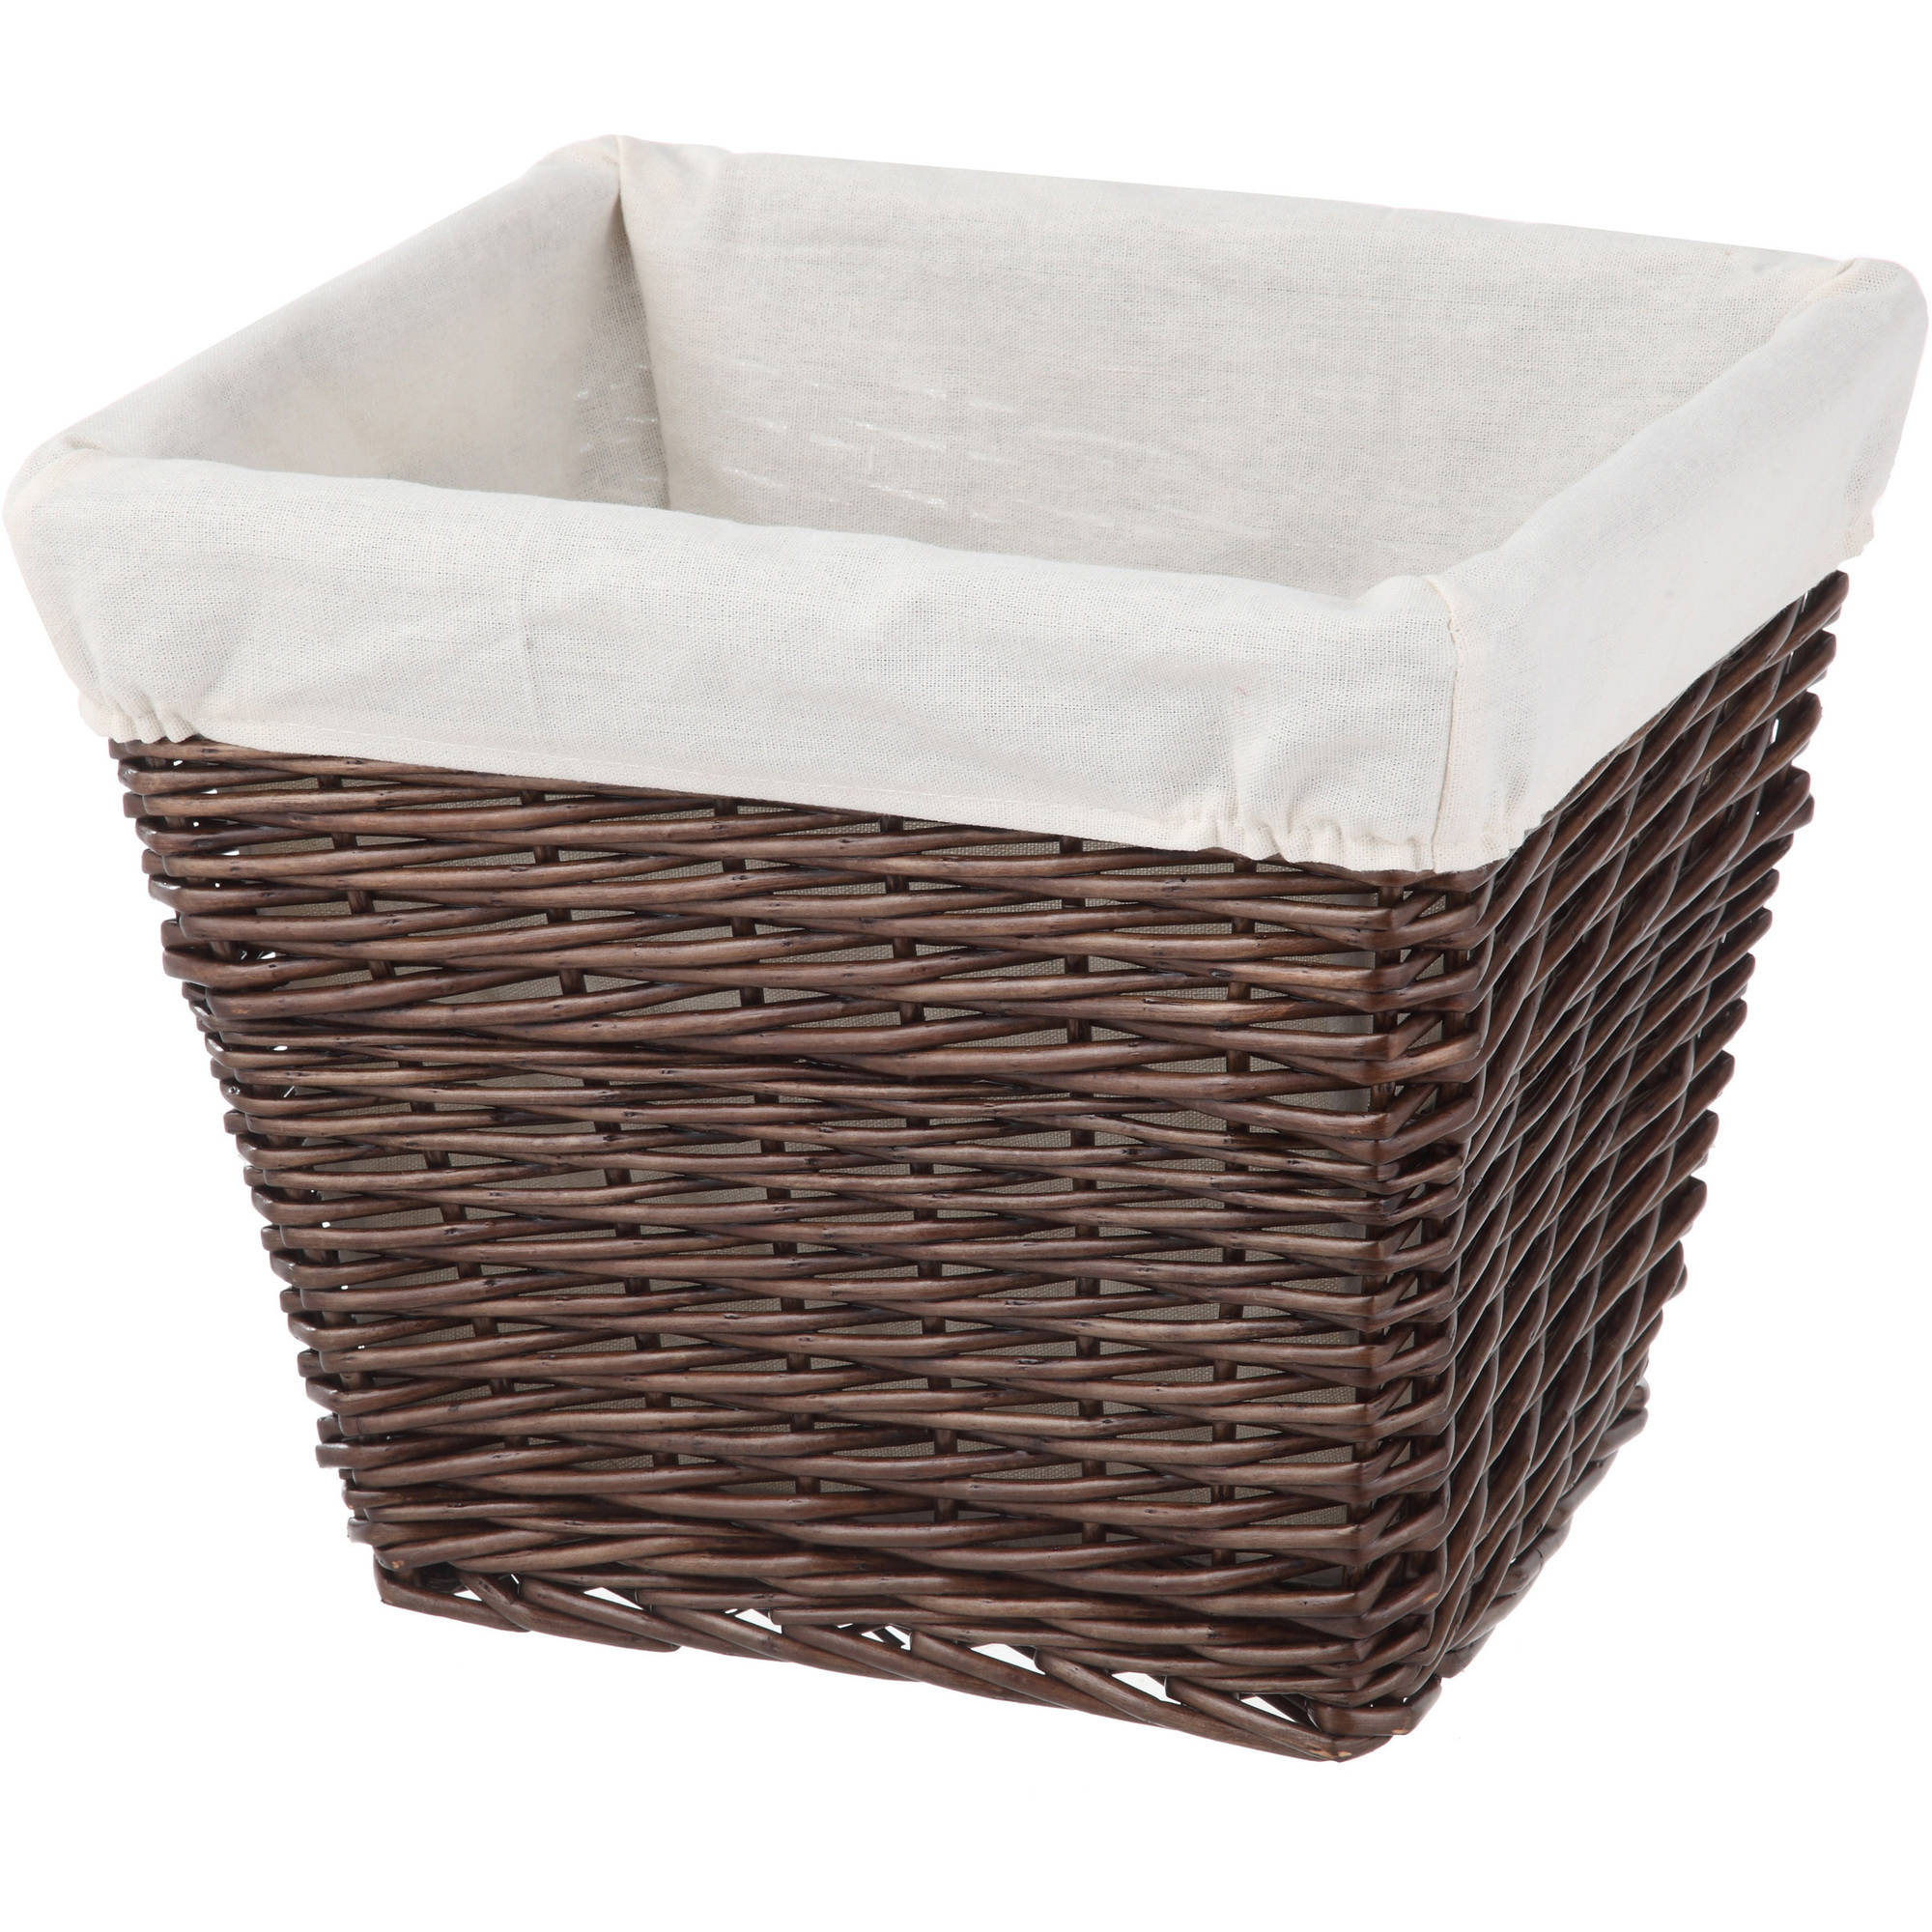 Better Homes and Gardens Willow Cube Basket